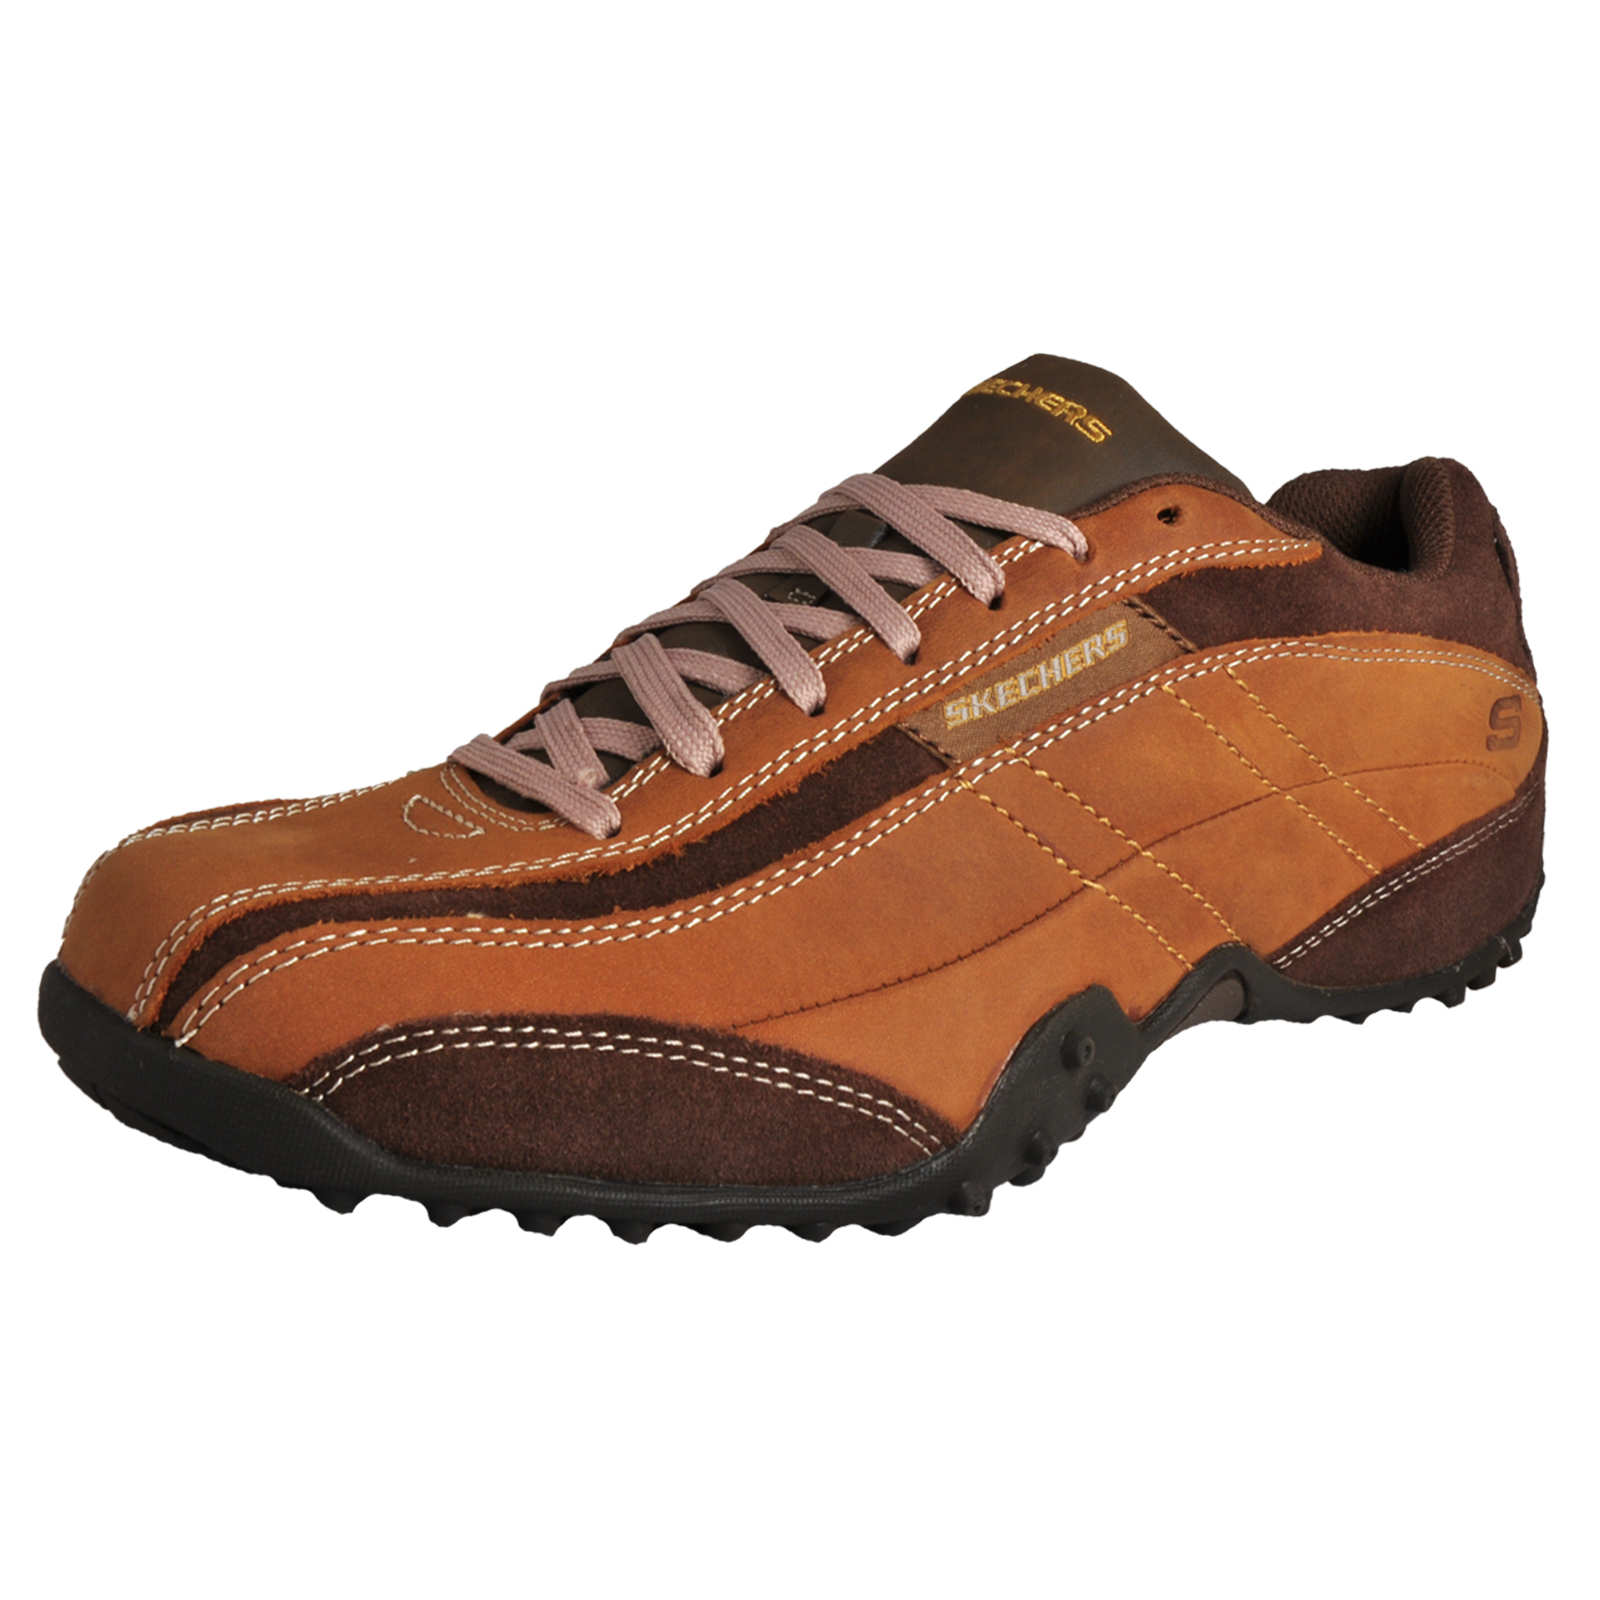 817e67adbfd0 Details about Skechers Urban Track Imperial Men s Casual Leather Shoes Brown